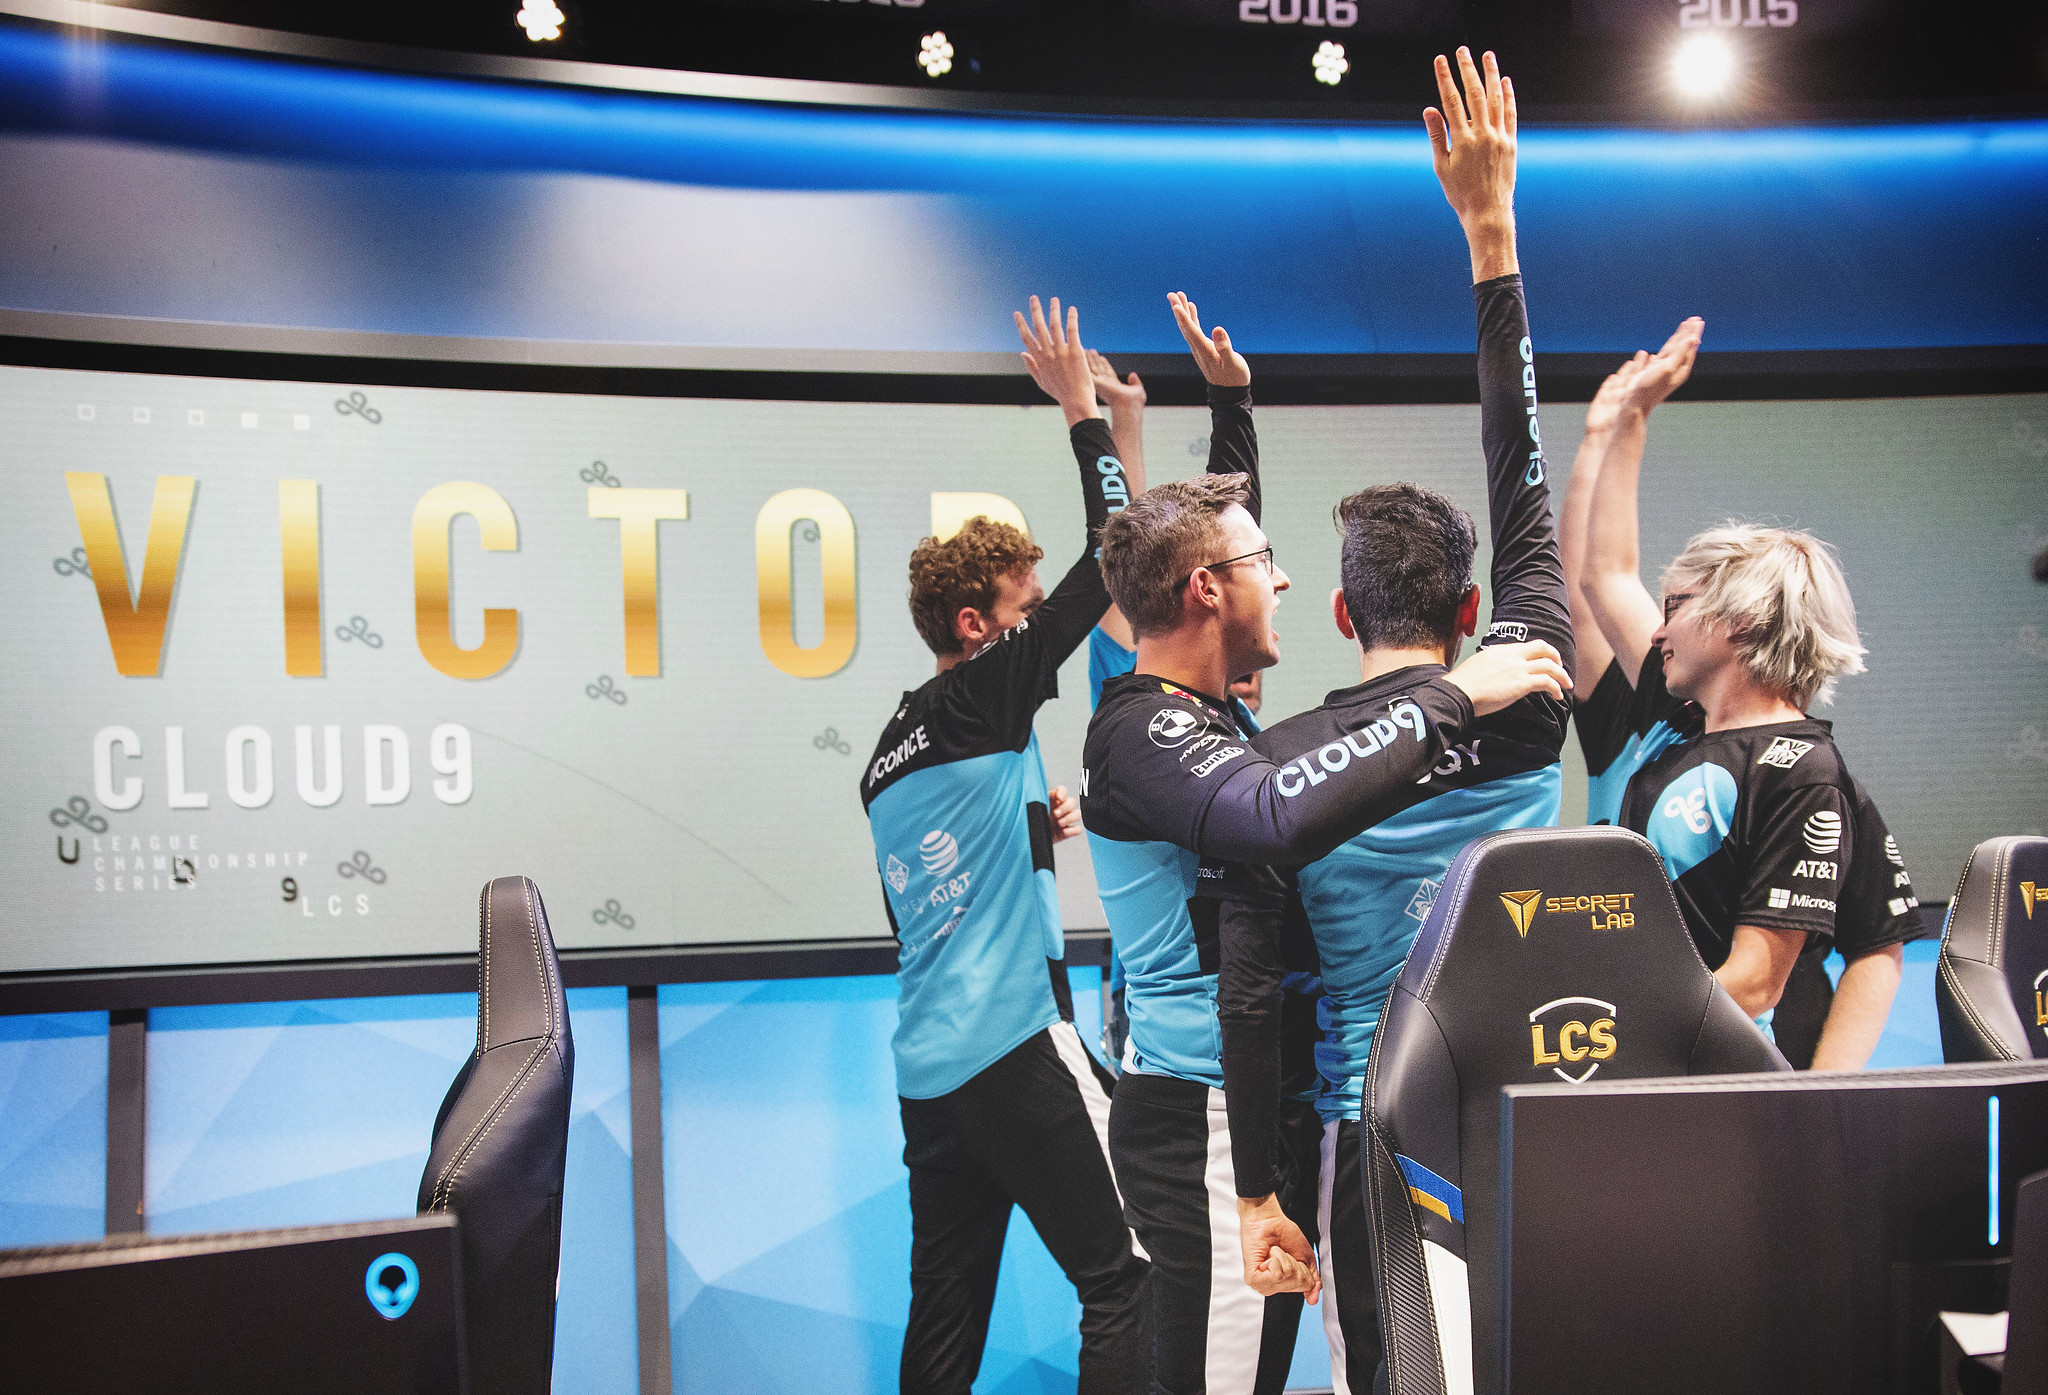 Can Cloud9 find a new LCS finals win to pair with their international success?